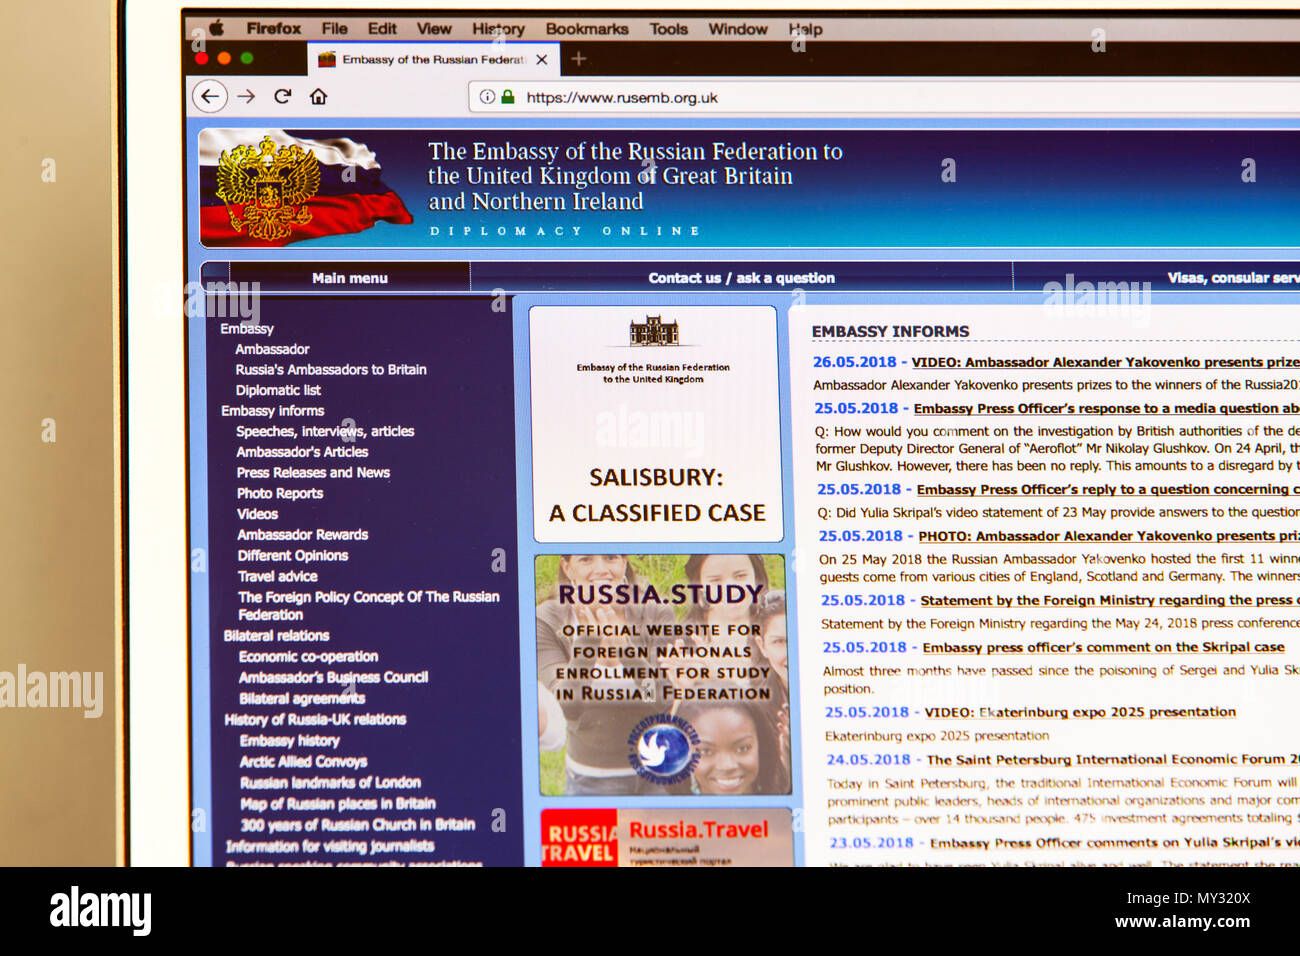 Russian Federation website, The Embassy of the Russian Federation to the UK Website, Embassy of Russian Federation, Russian Embassy Website, internet - Stock Image